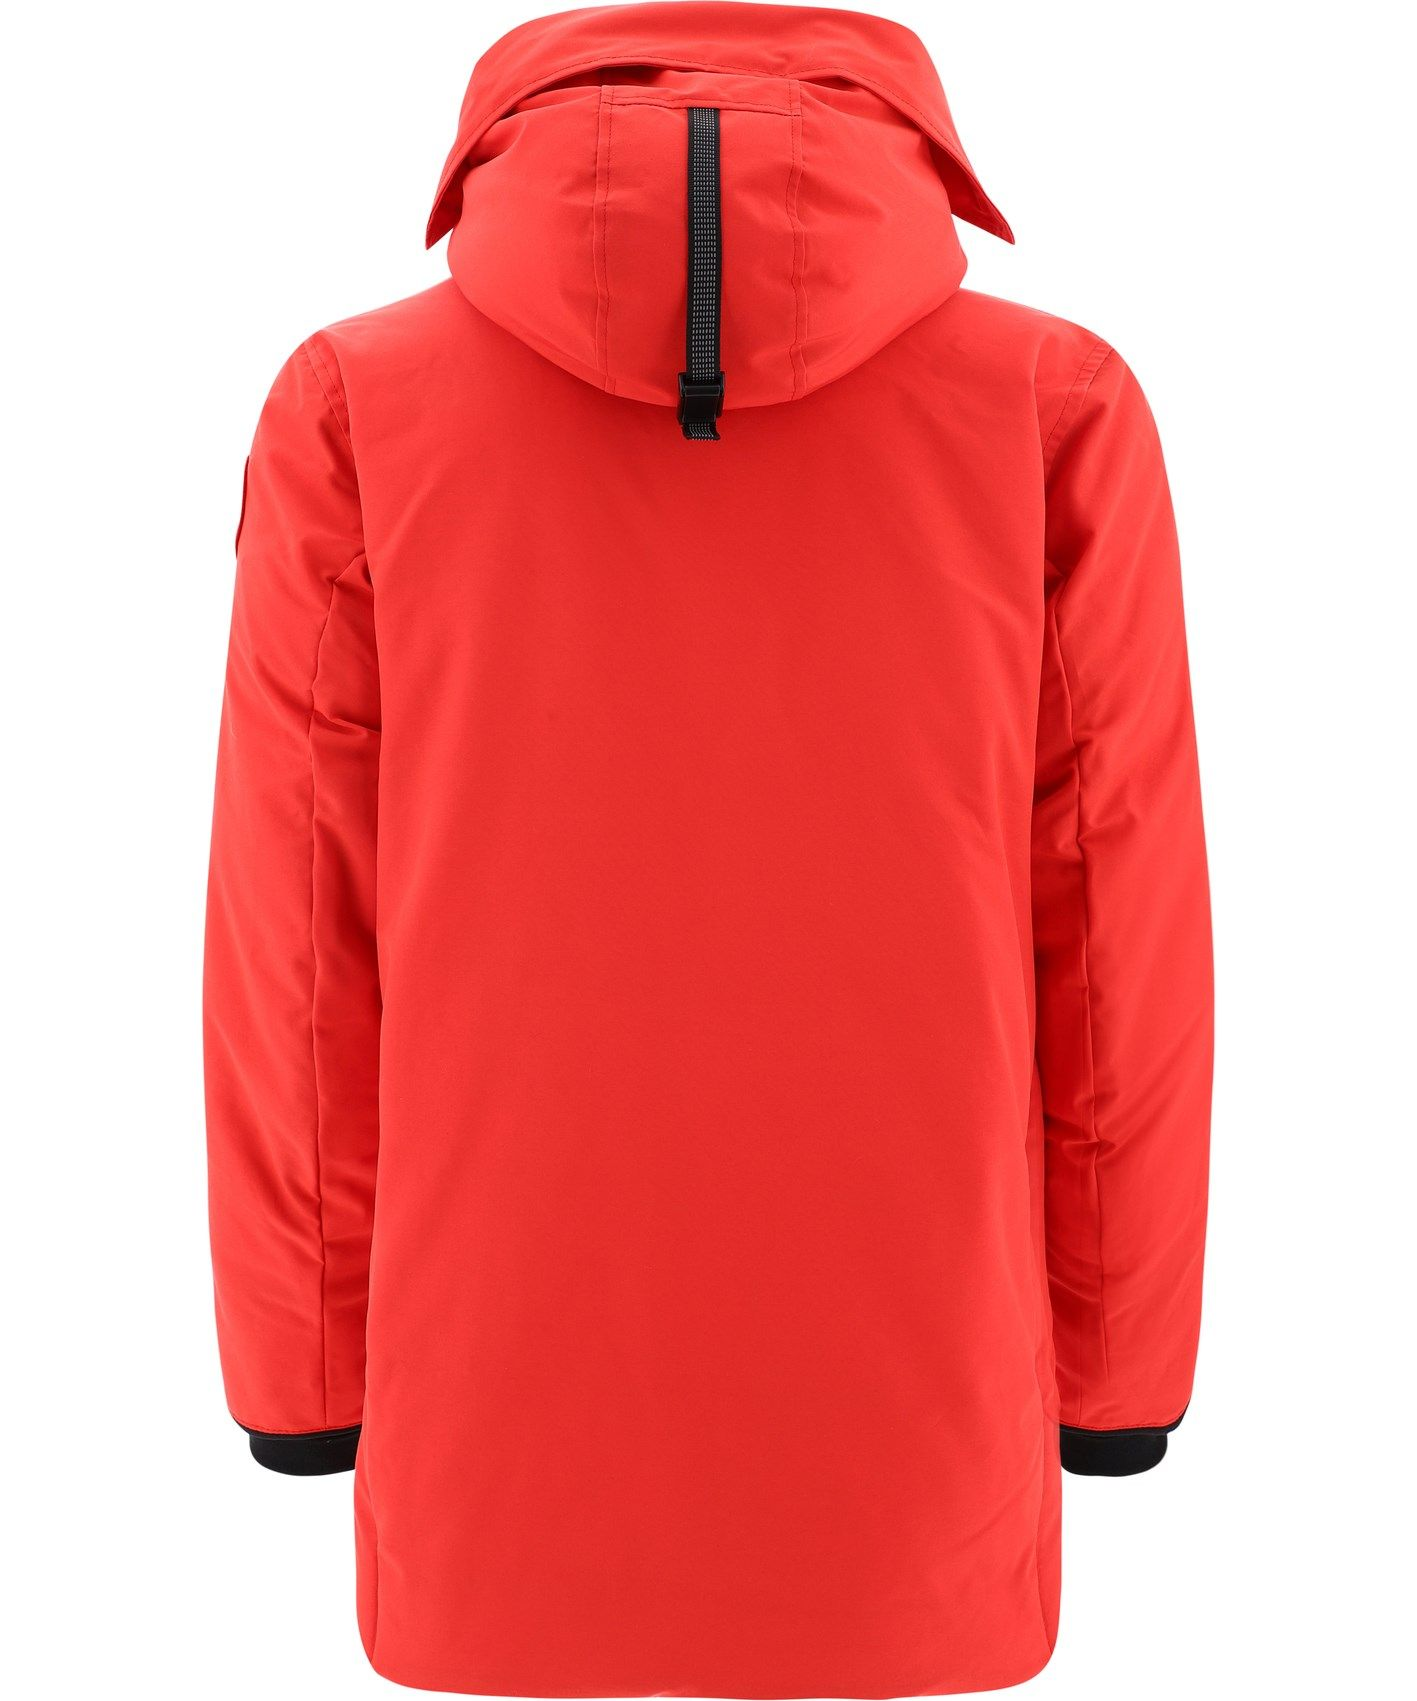 CANADA GOOSE Cottons CANADA GOOSE MEN'S RED POLYESTER OUTERWEAR JACKET